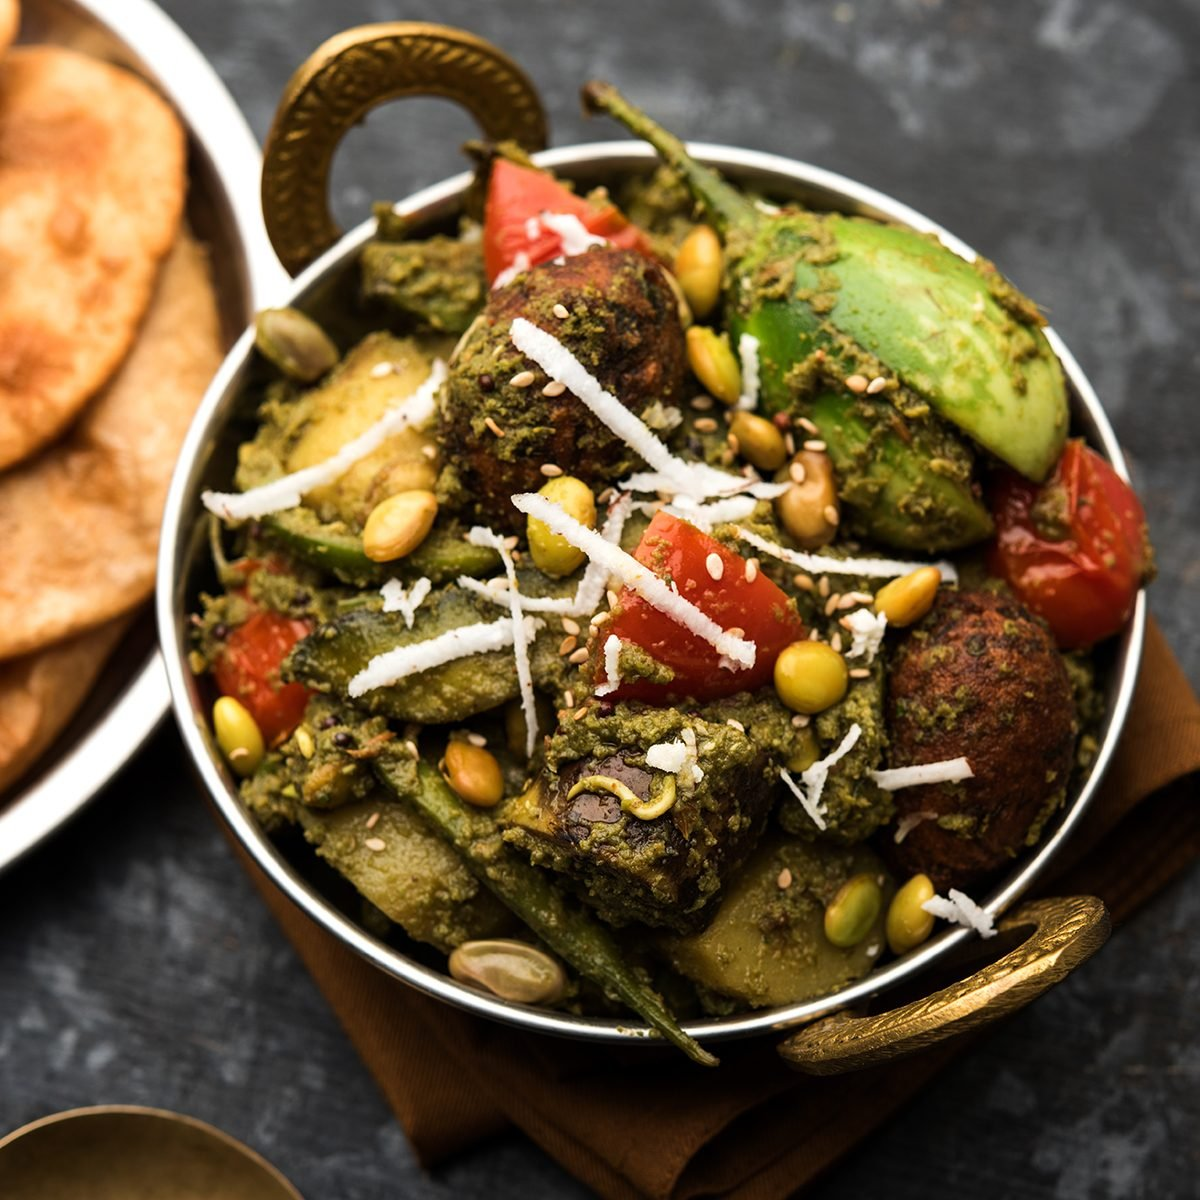 indian main dishes Undhiyu Is A Gujarati Mixed Vegetable Dish, Specialty Of Surat, India. Served In A Bowl With Or Without Poori